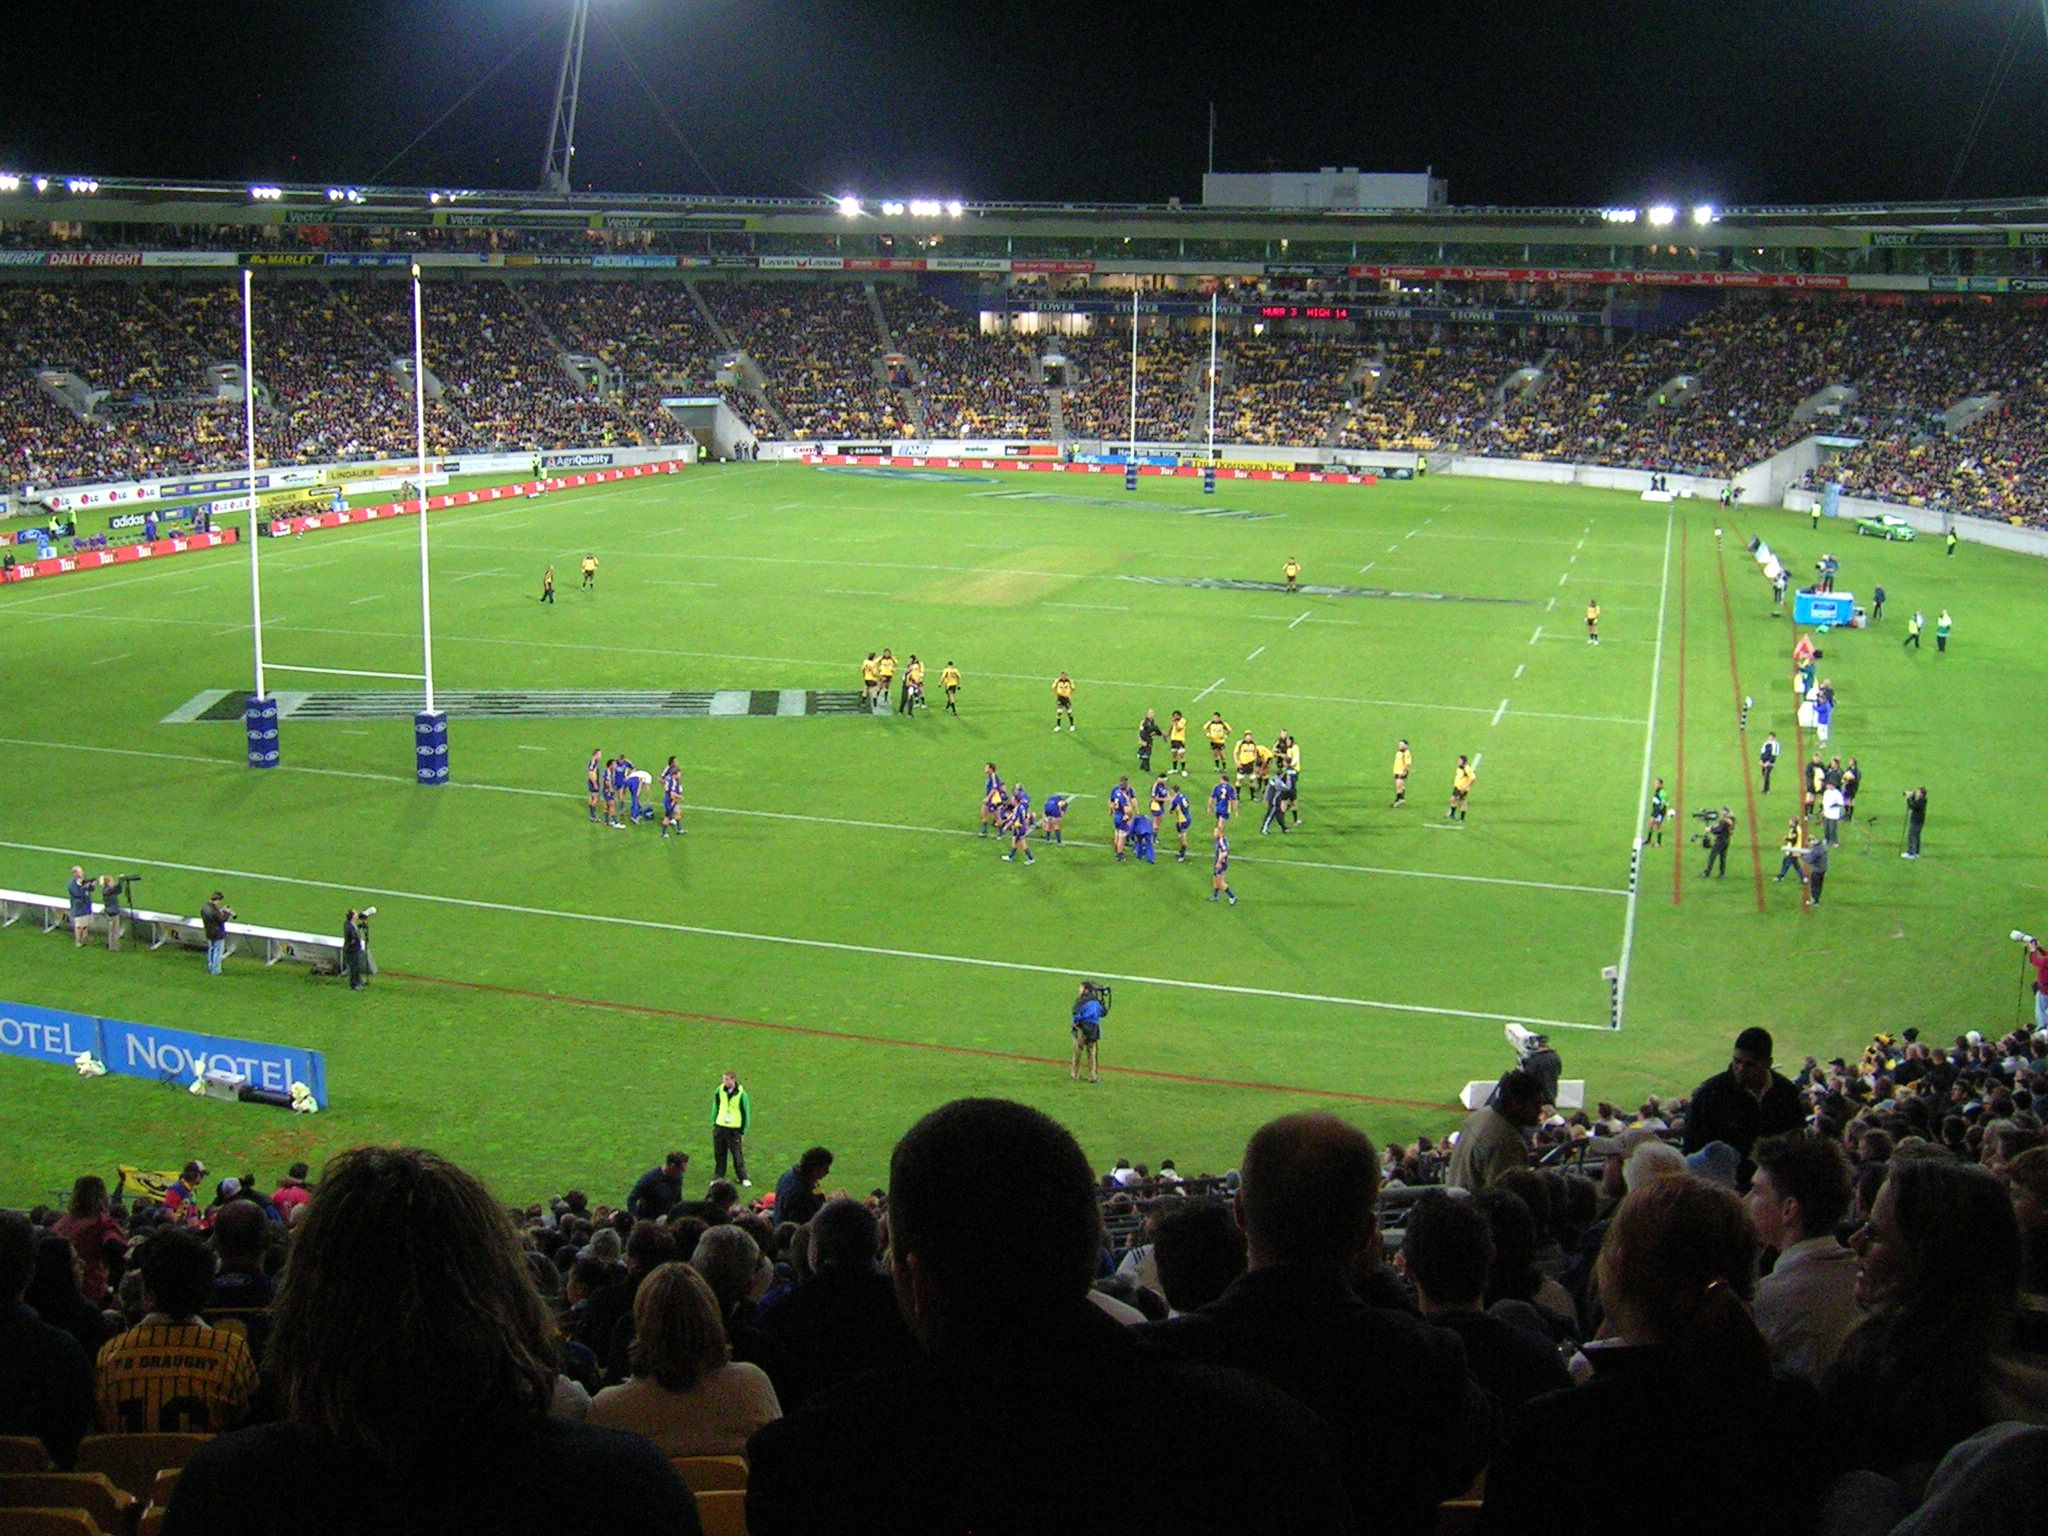 By Brett Taylor from Wellington, New Zealand (Game On) [CC BY 2.0 (http://creativecommons.org/licenses/by/2.0)], via Wikimedia Commons